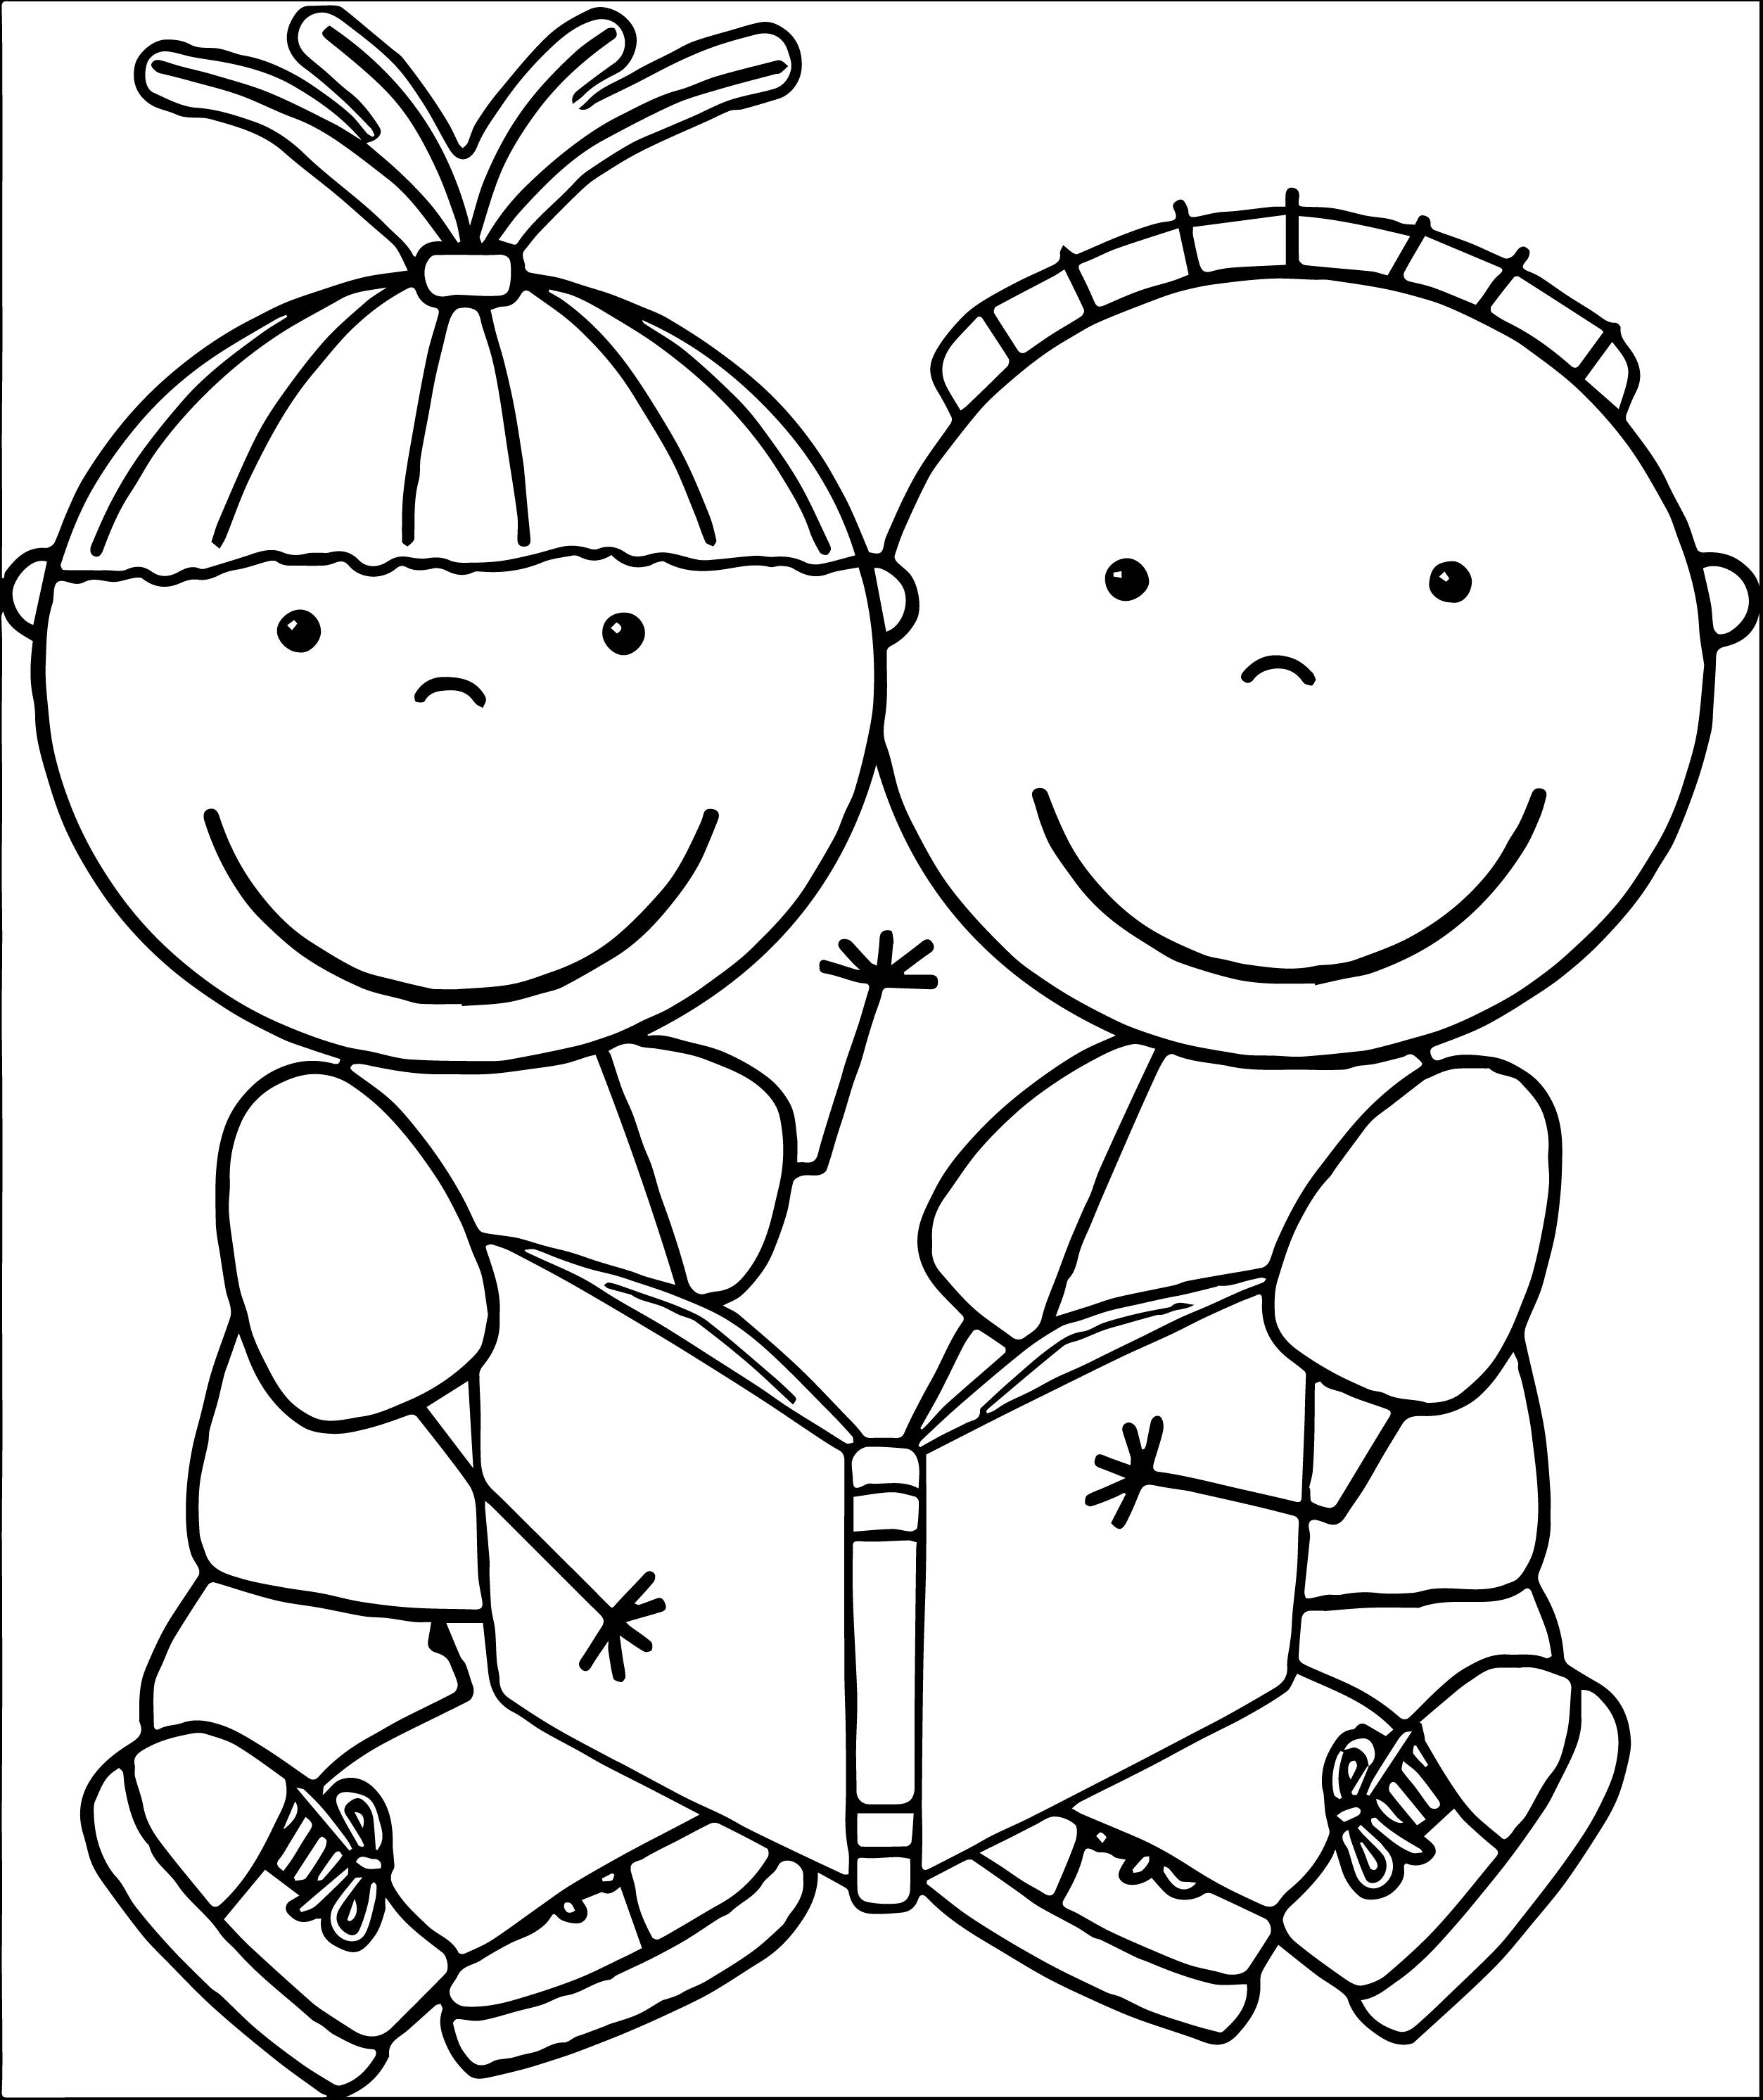 Free Educational Clipart Free Clip Art Children Reading Books 202x417 Kids We Coloring Page